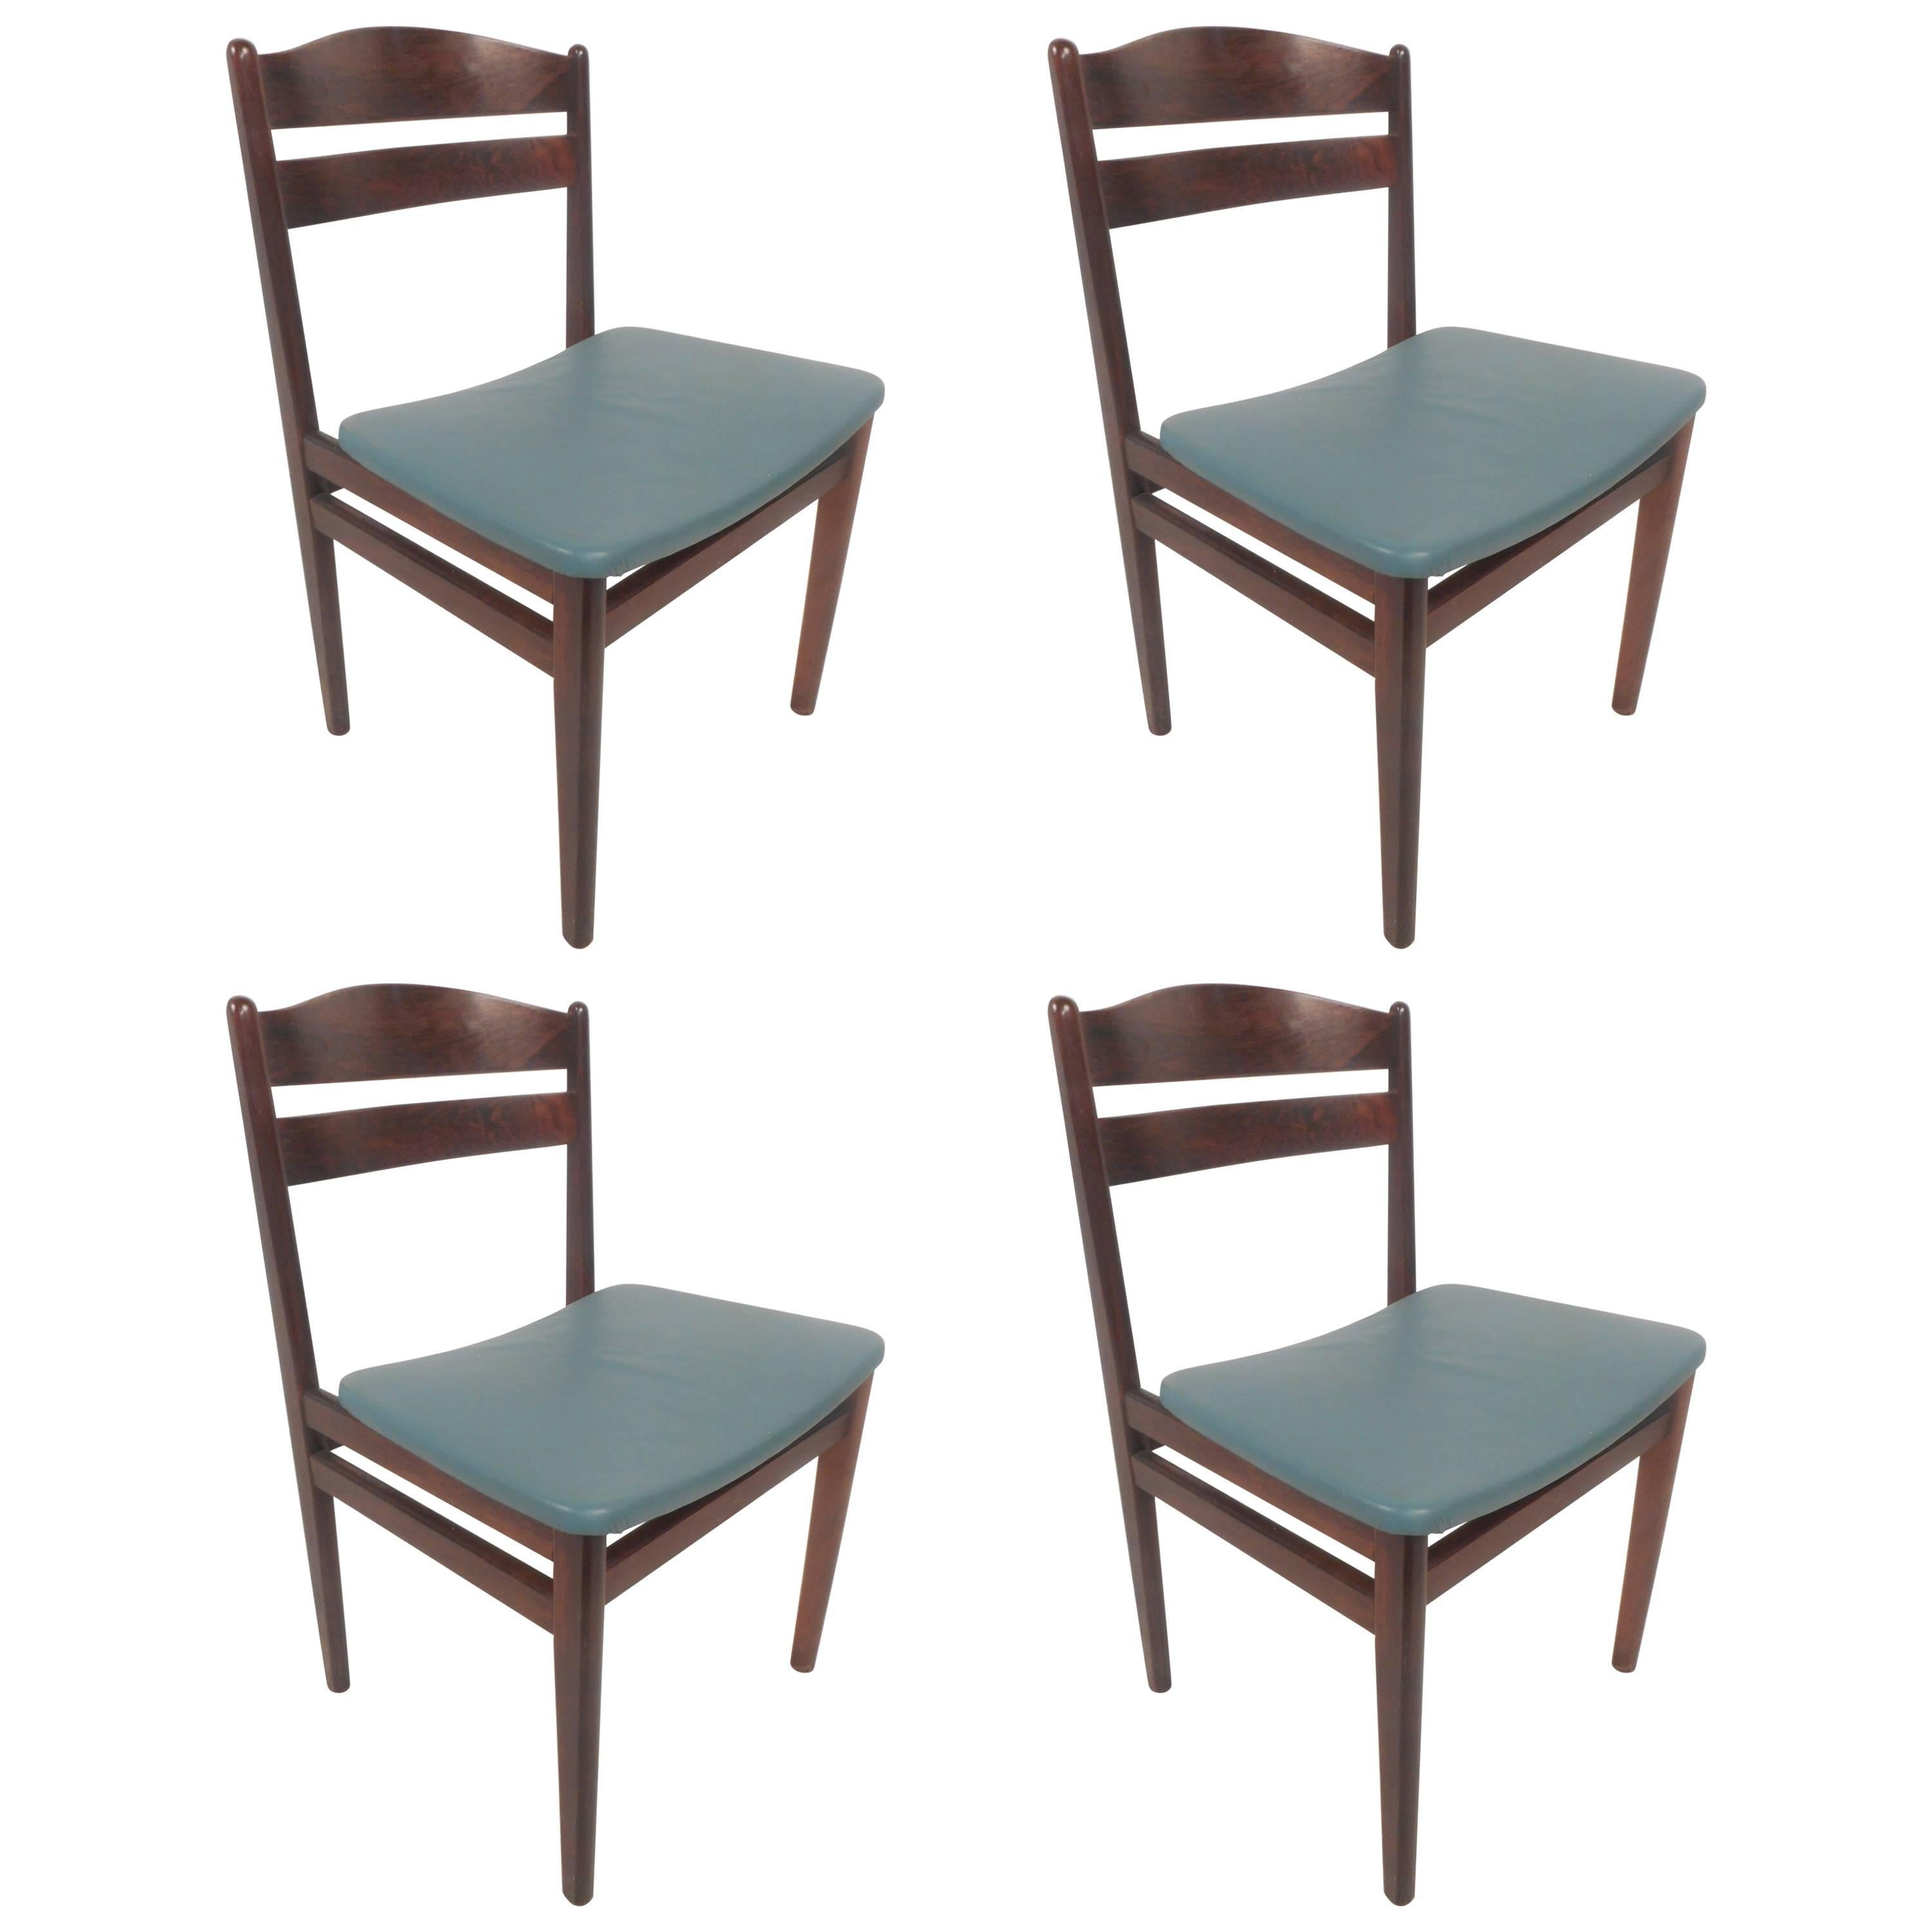 Set of Four Mid-Century Modern Danish Rosewood Dining Chairs with Leather Seats